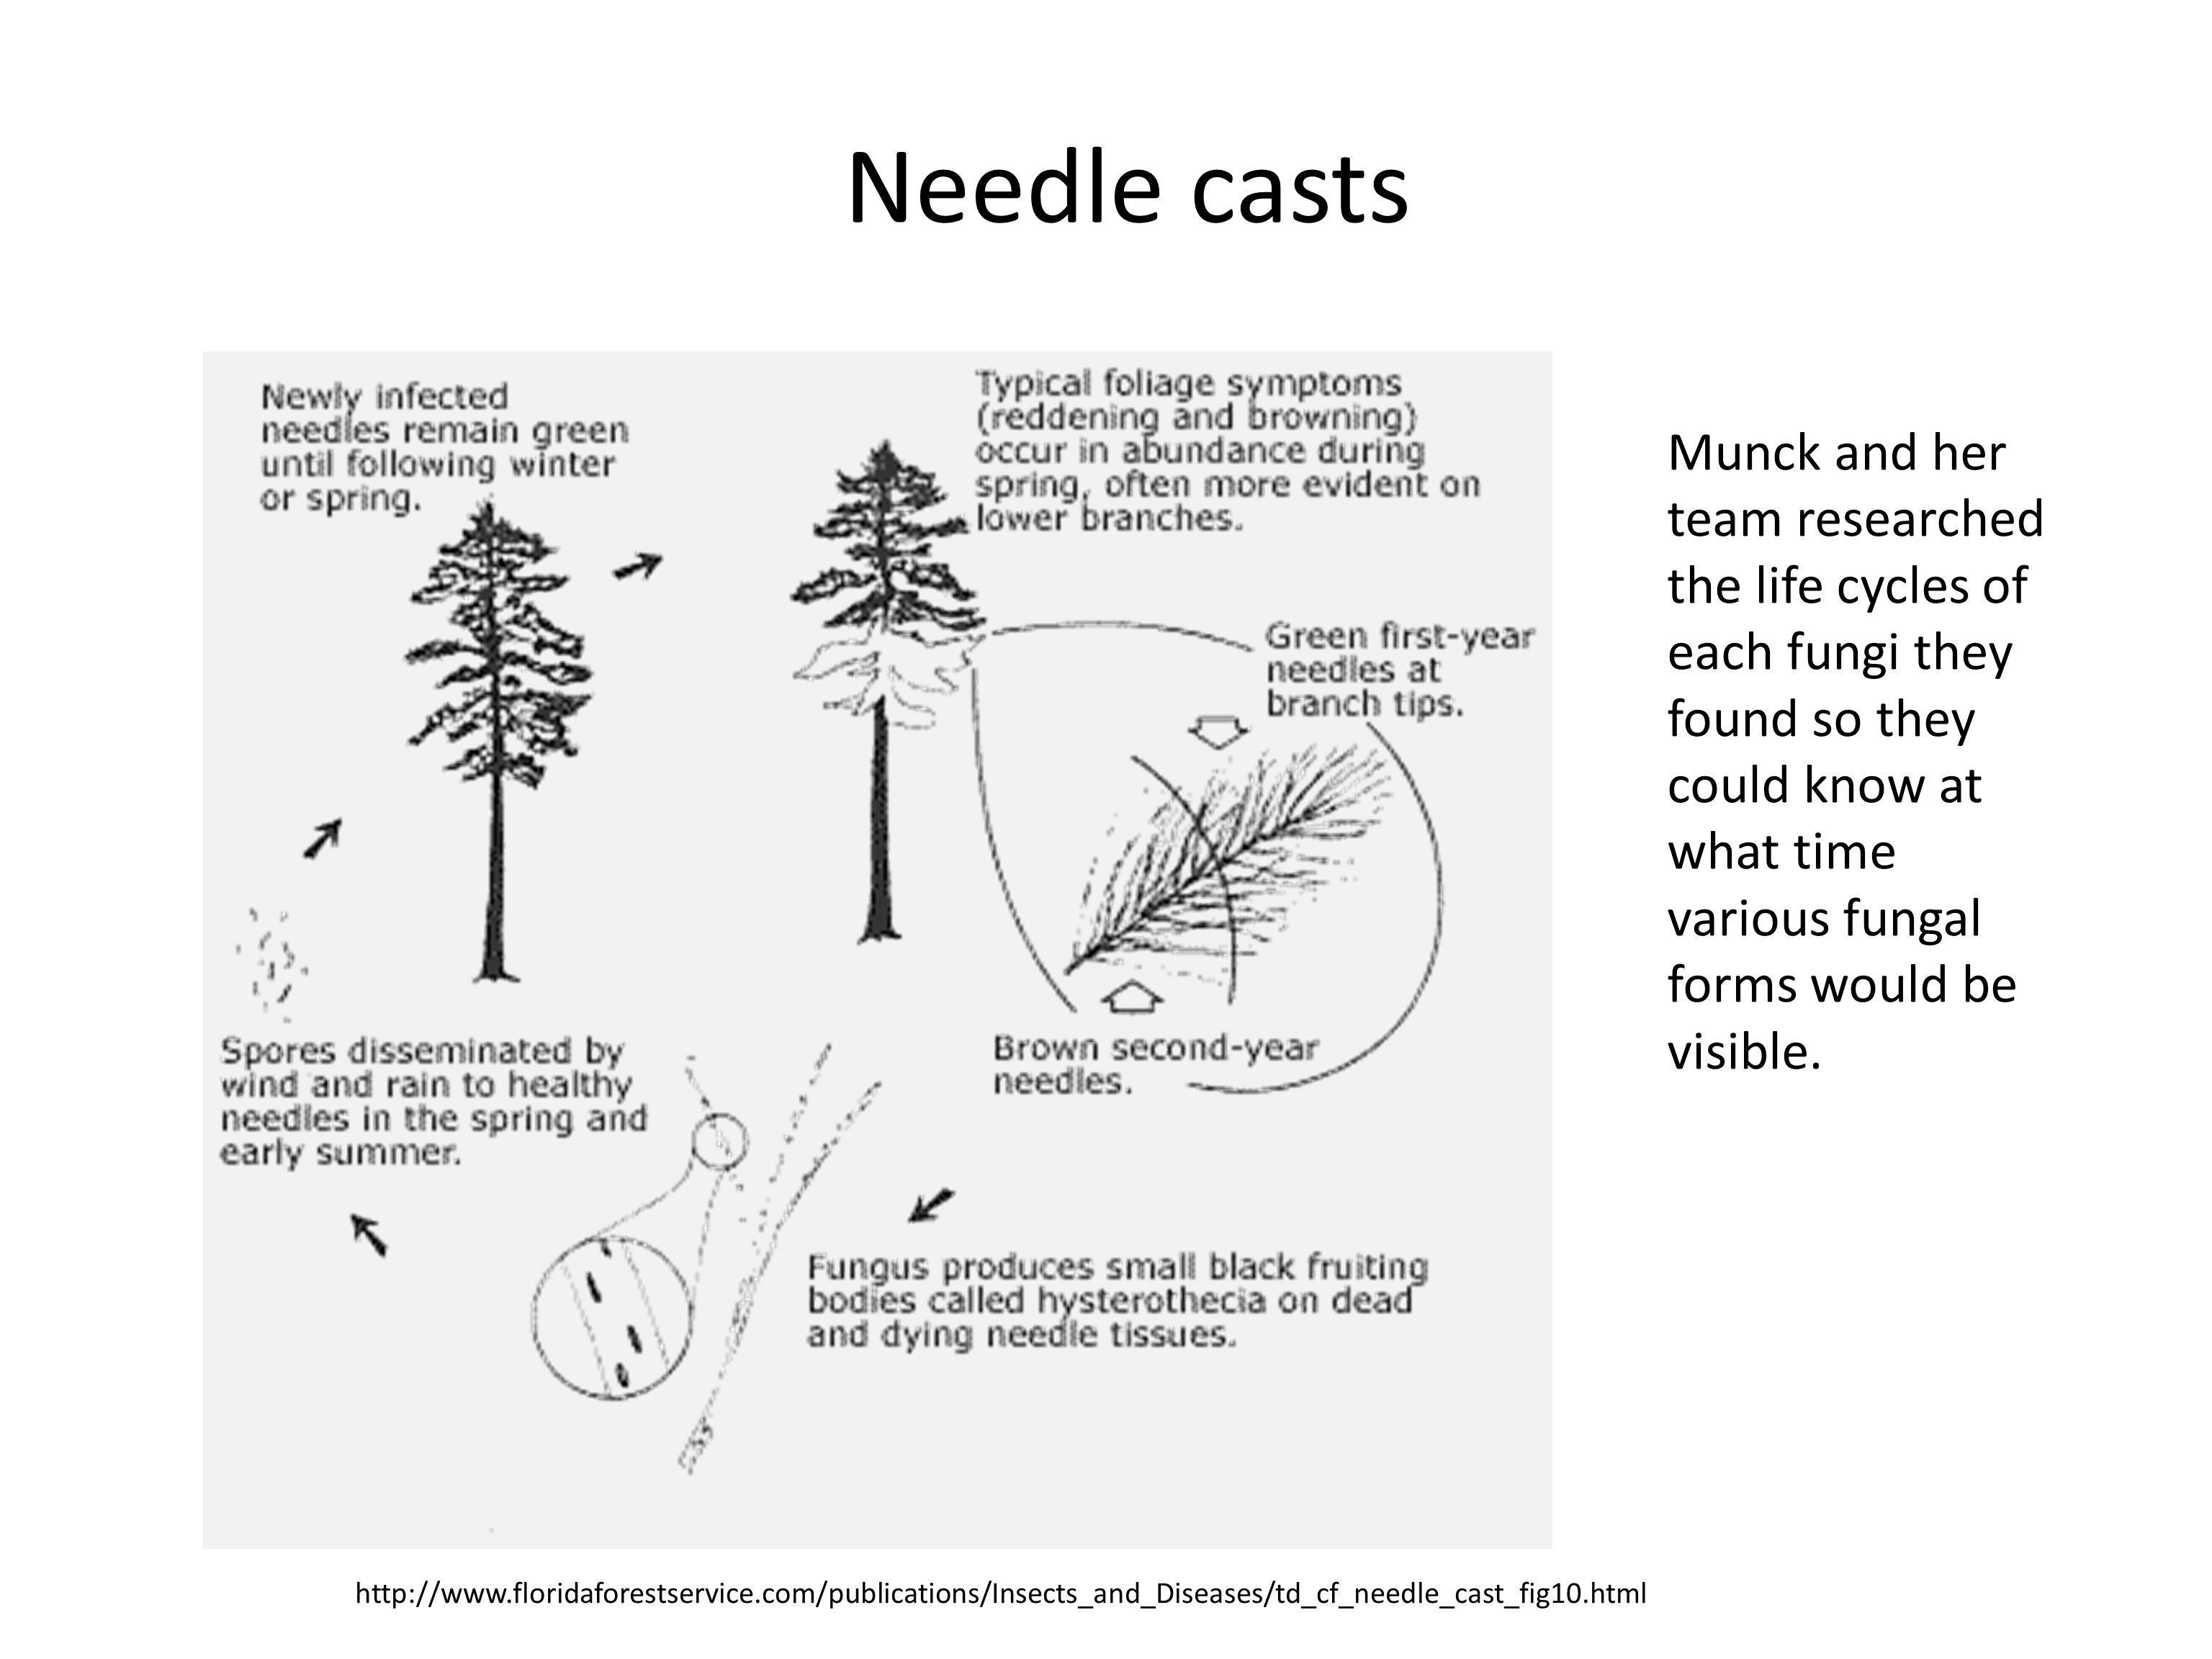 Needle casts http://www.floridaforestservice.com/publications/Insects_and_Diseases/td_cf_needle_cast_fig10.html Munck and her team researched the life cycles of each fungi they found so they could know at what time various fungal forms would be visible.